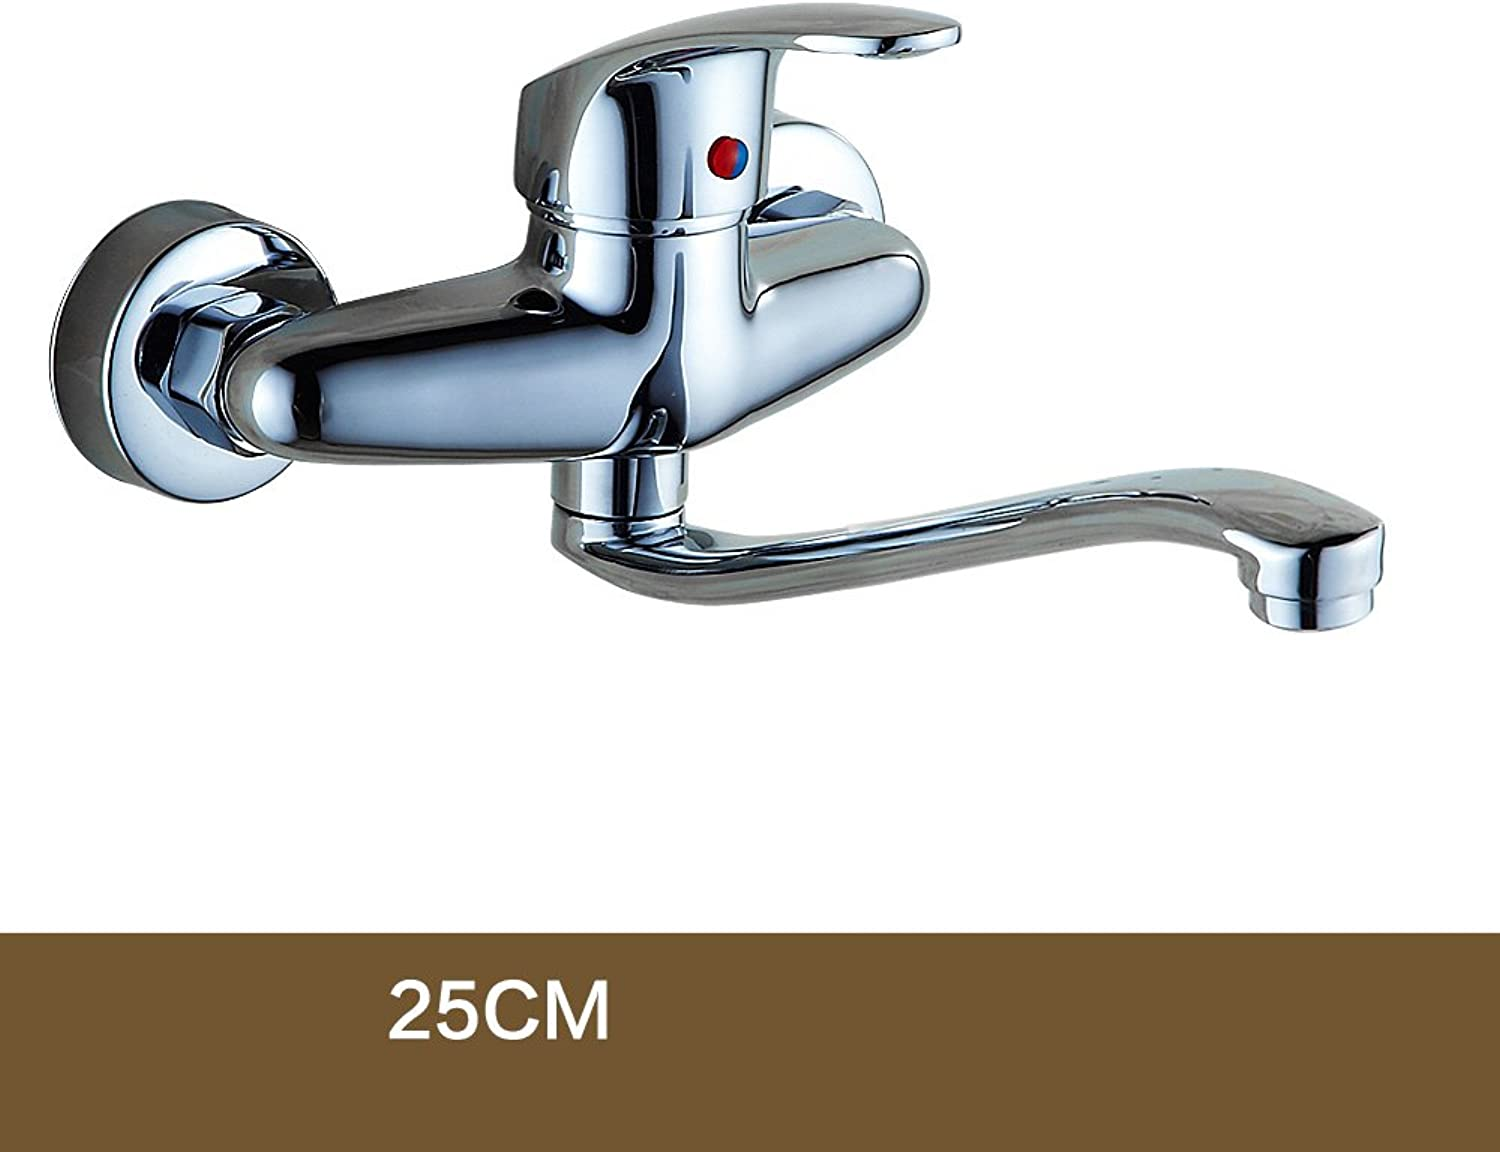 In-Wall Kitchen Hot & Cold Faucet Full Copper Body Balcony Laundry Basin Pool Basin Faucet Single Handle redatable (Size   25cm)